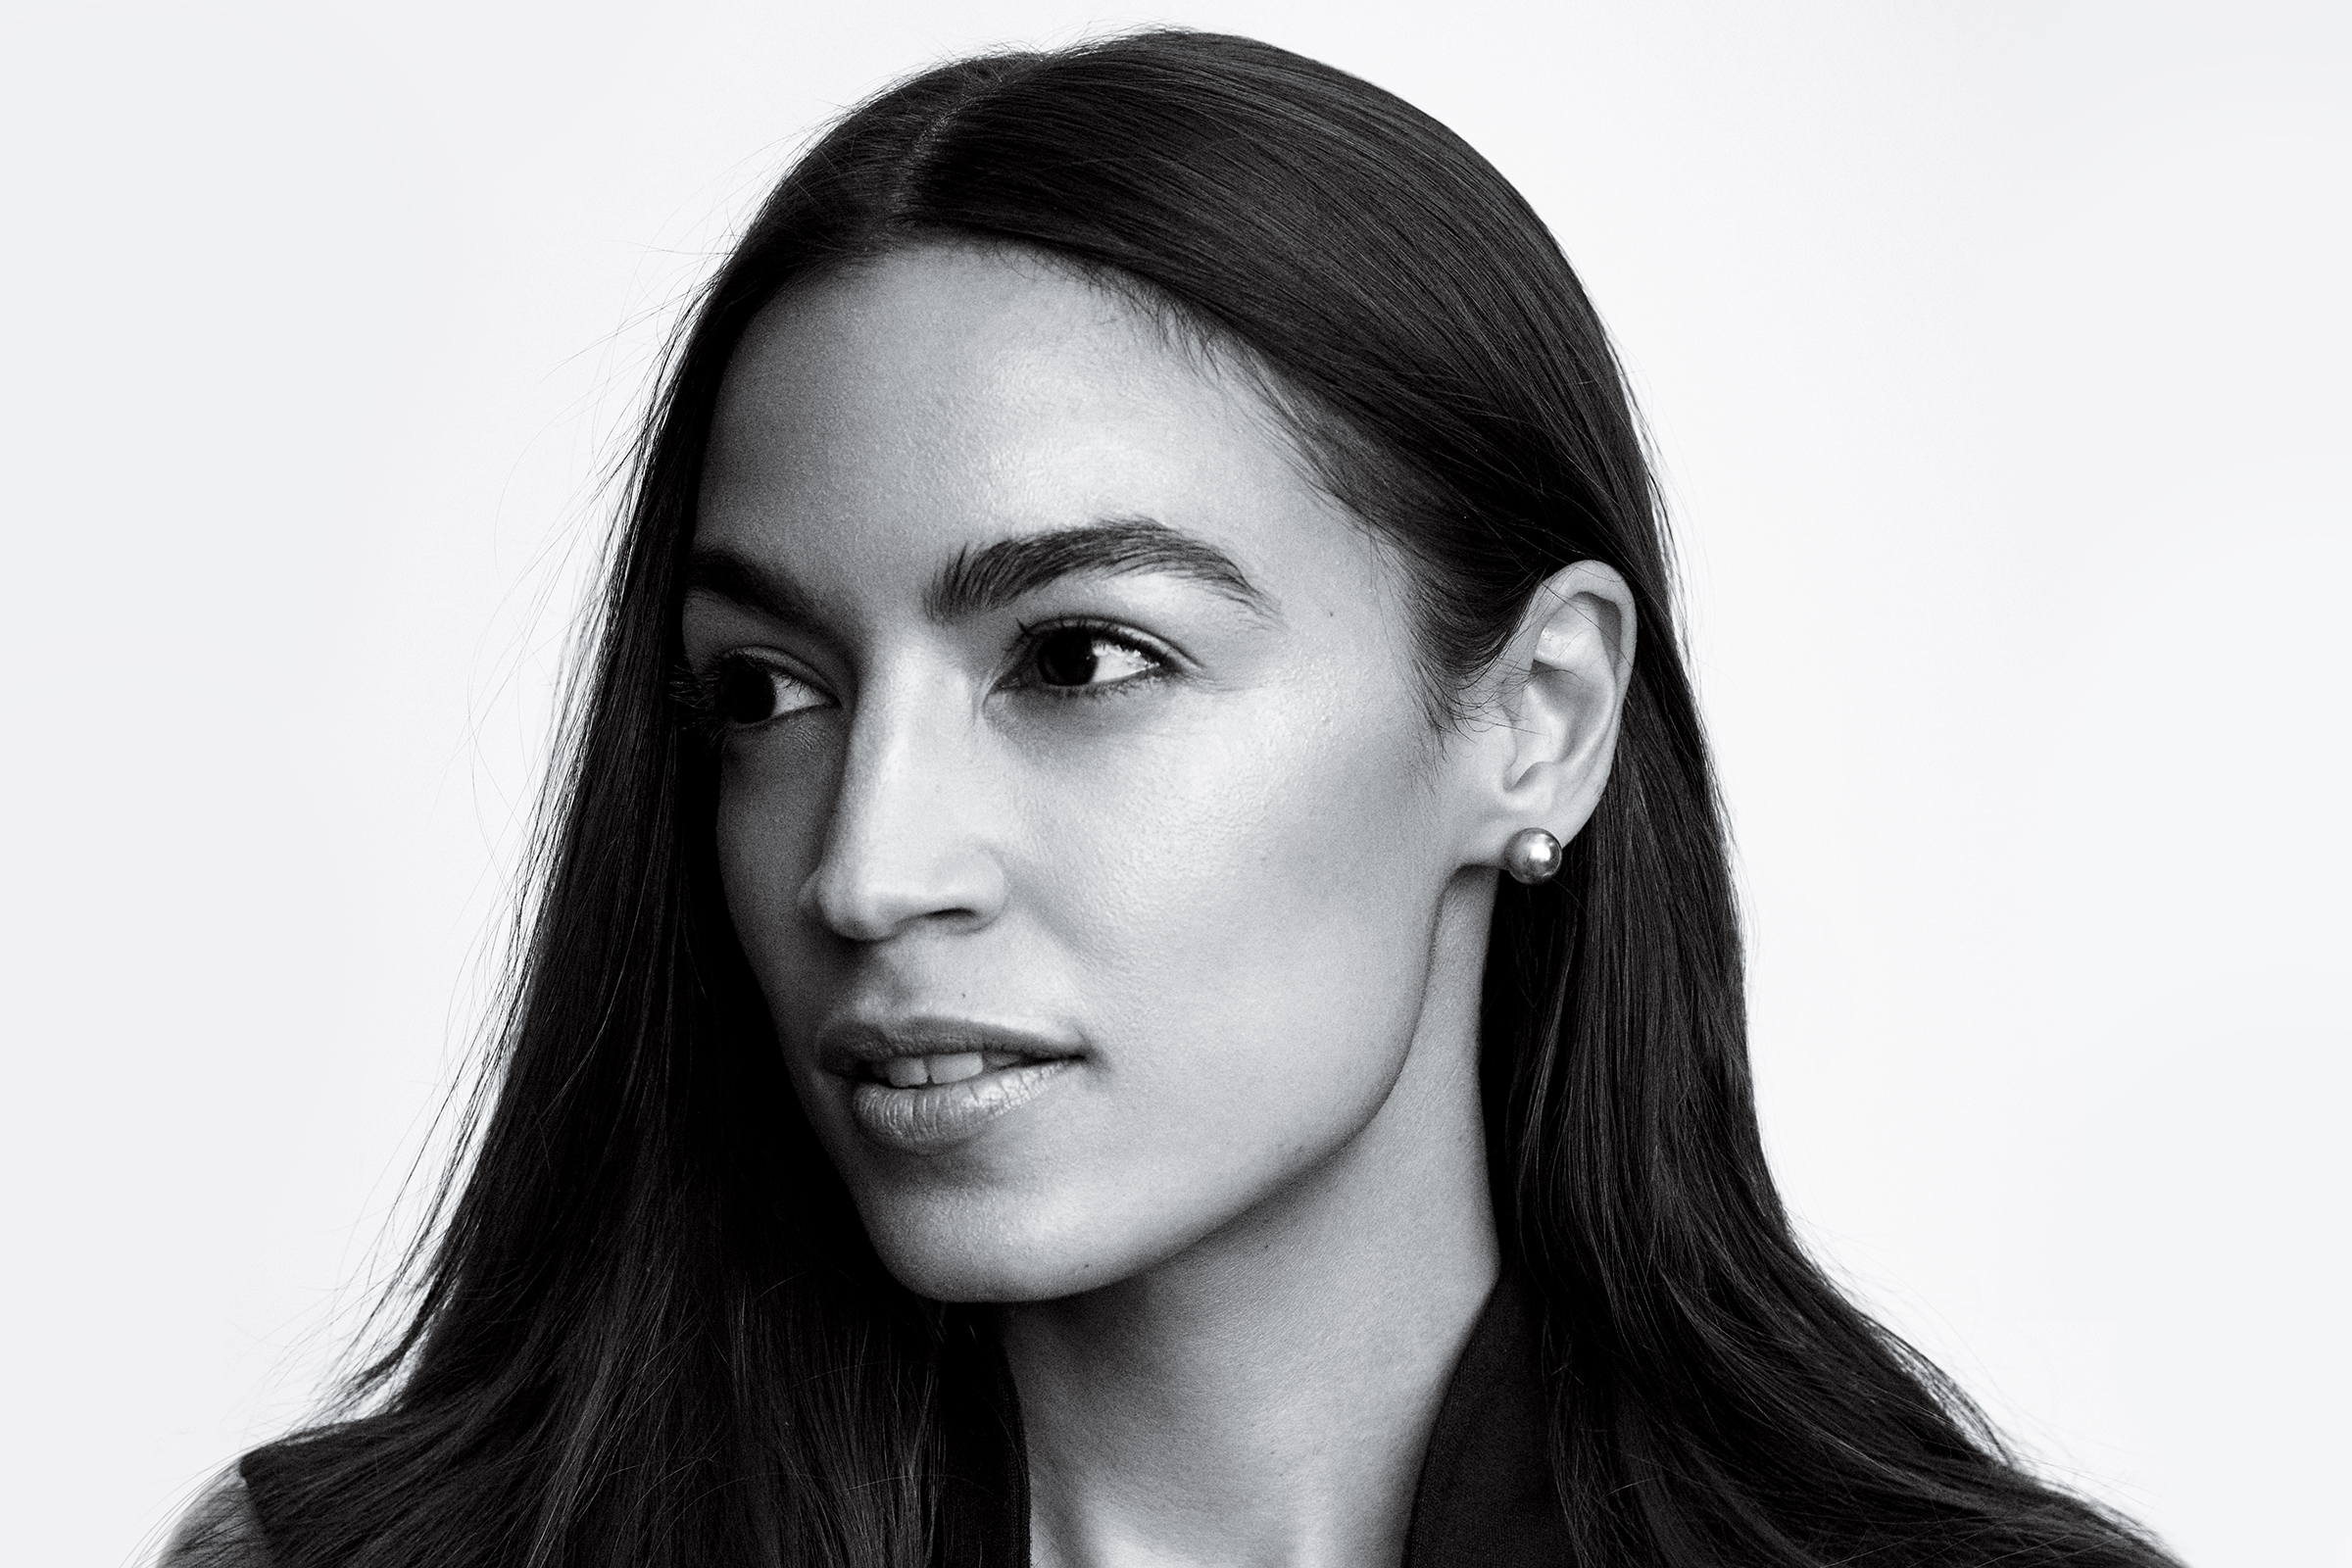 Alexandria Ocasio-Cortez Wants the Country to Think Big